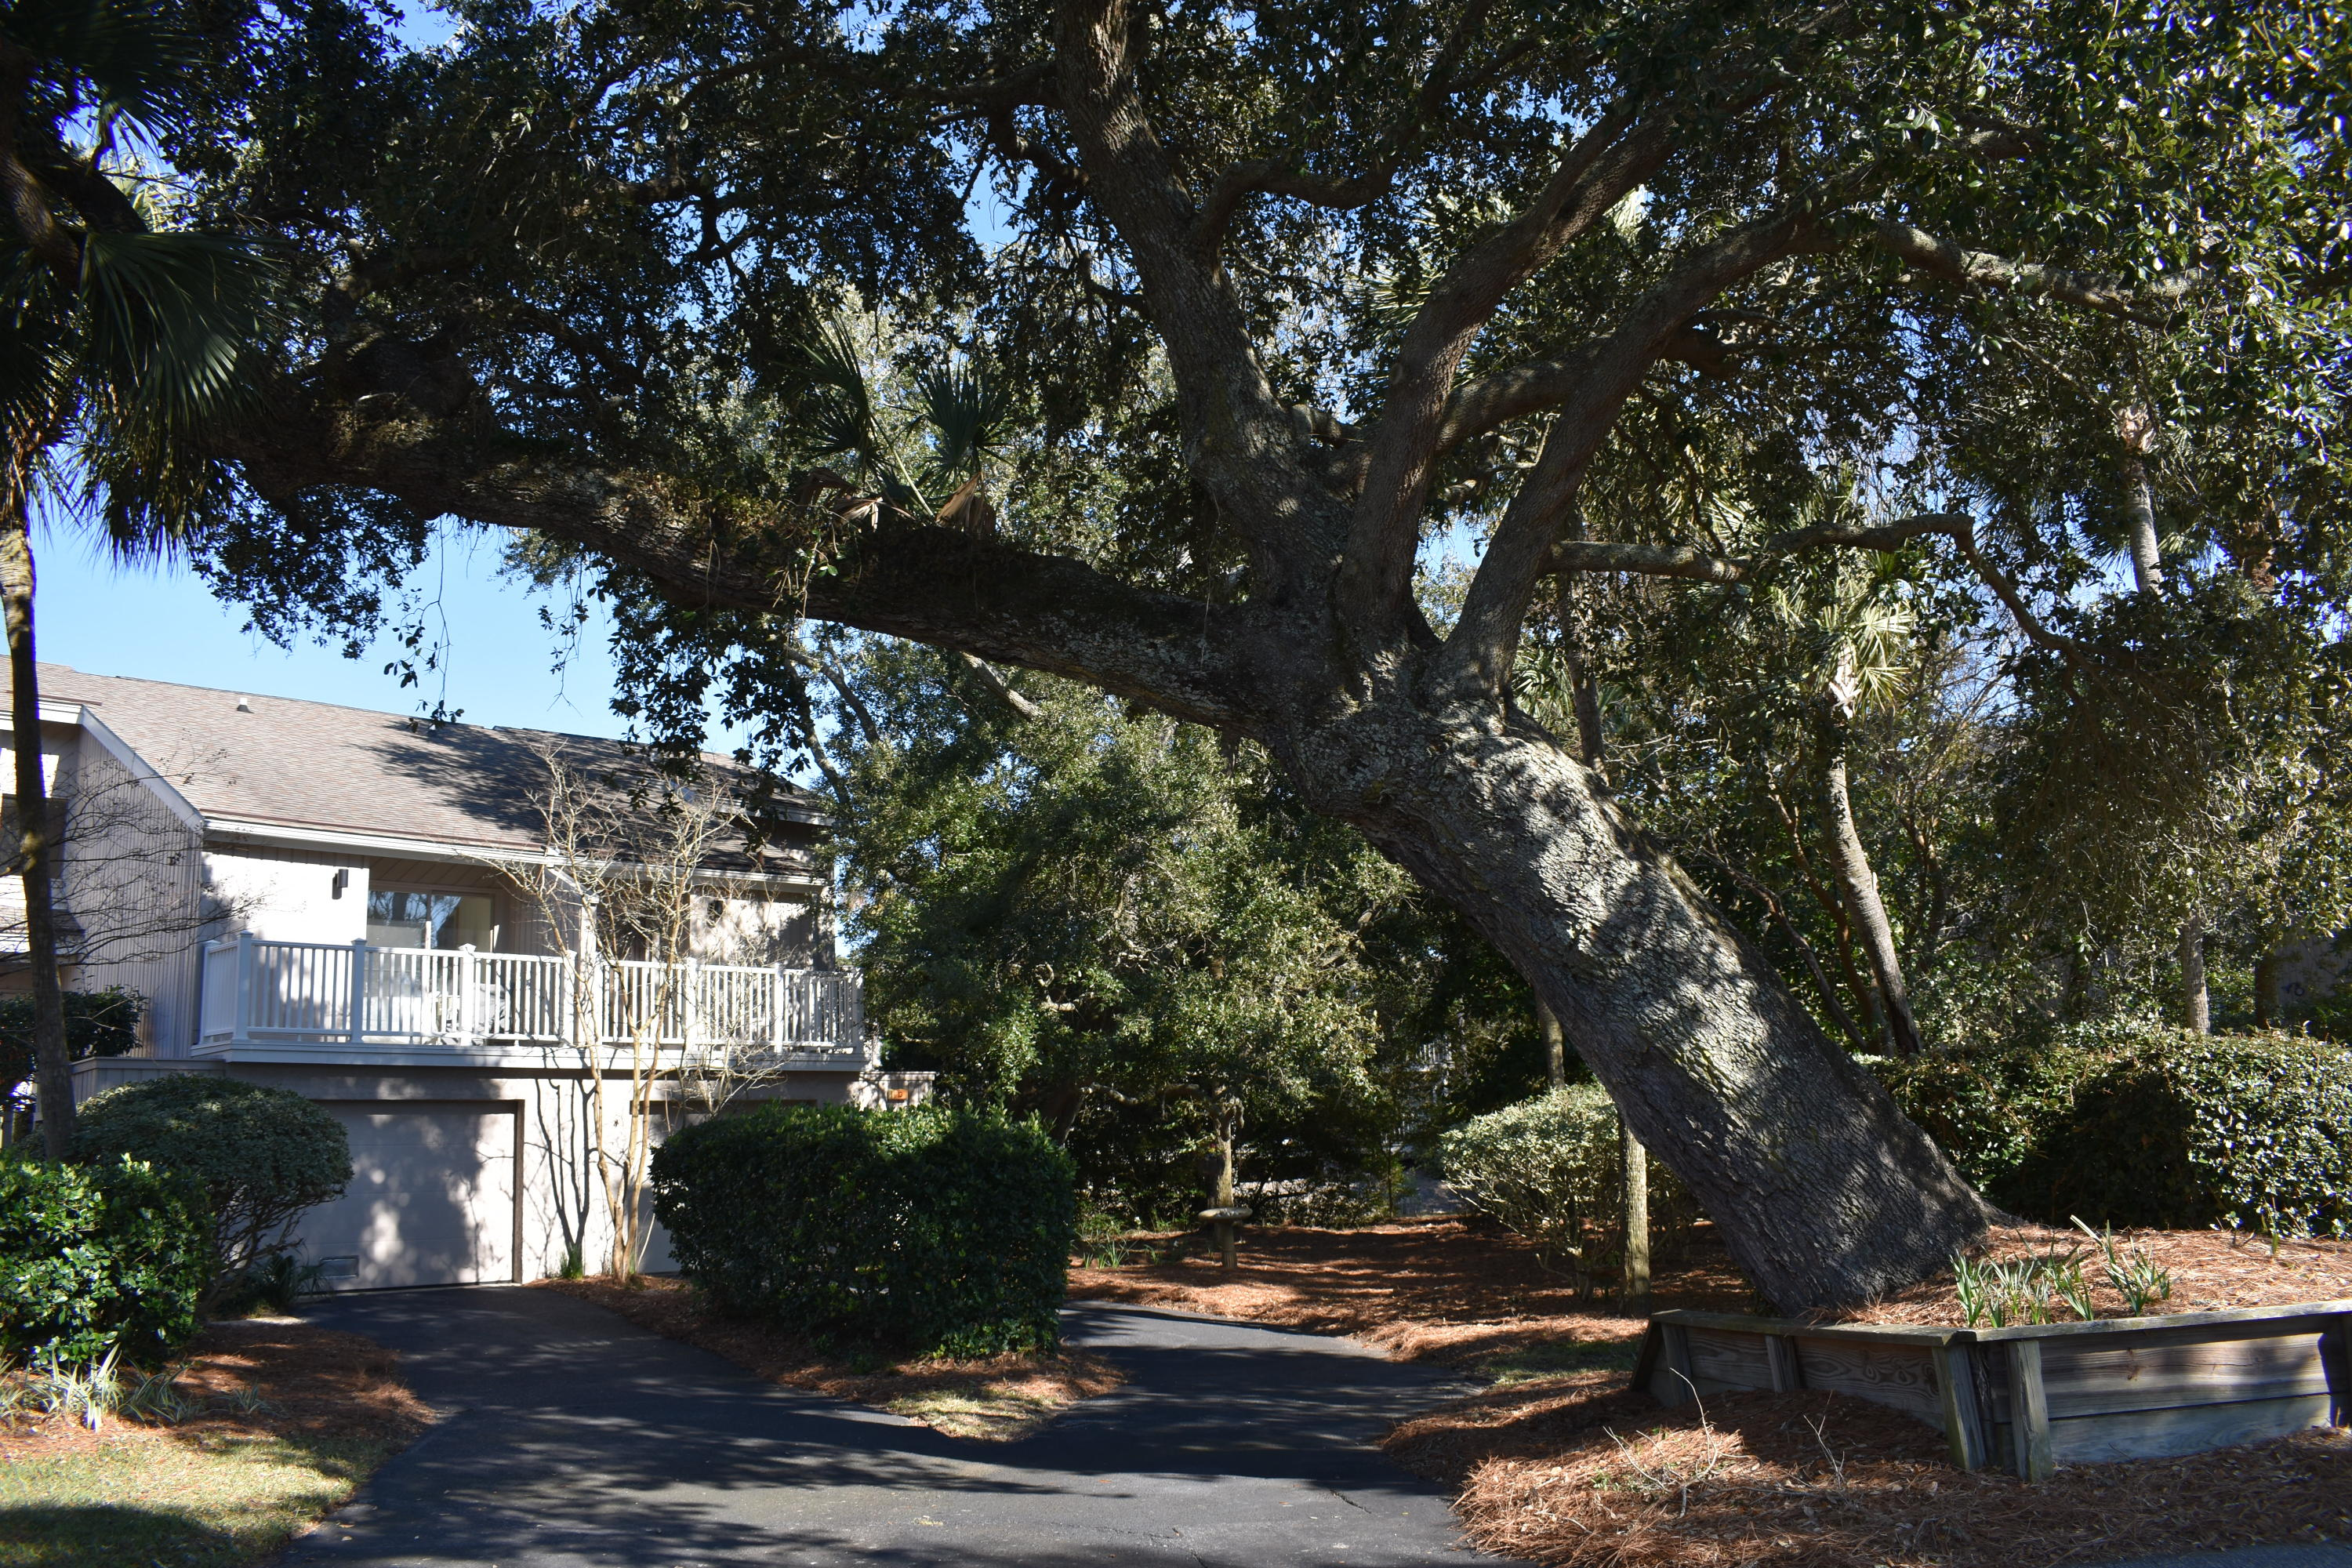 13 Back Court Isle Of Palms, SC 29451